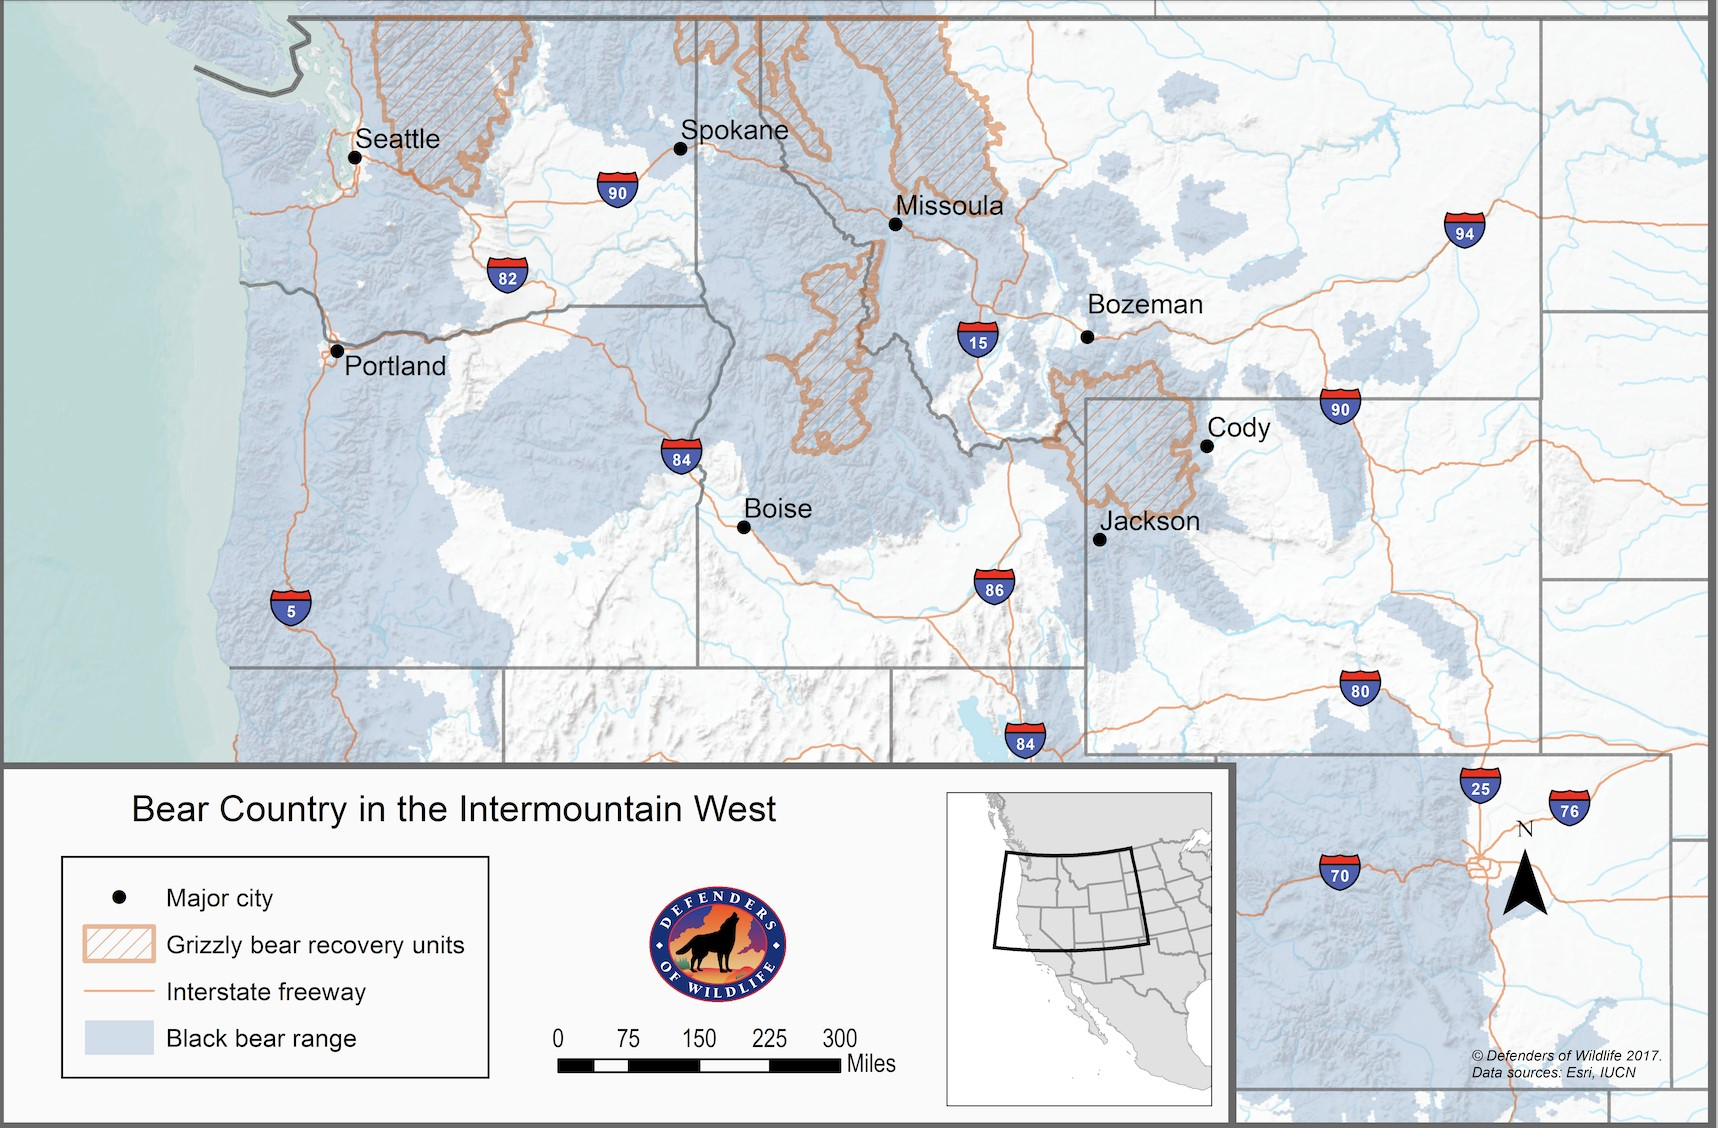 Bear country in the intermountain west